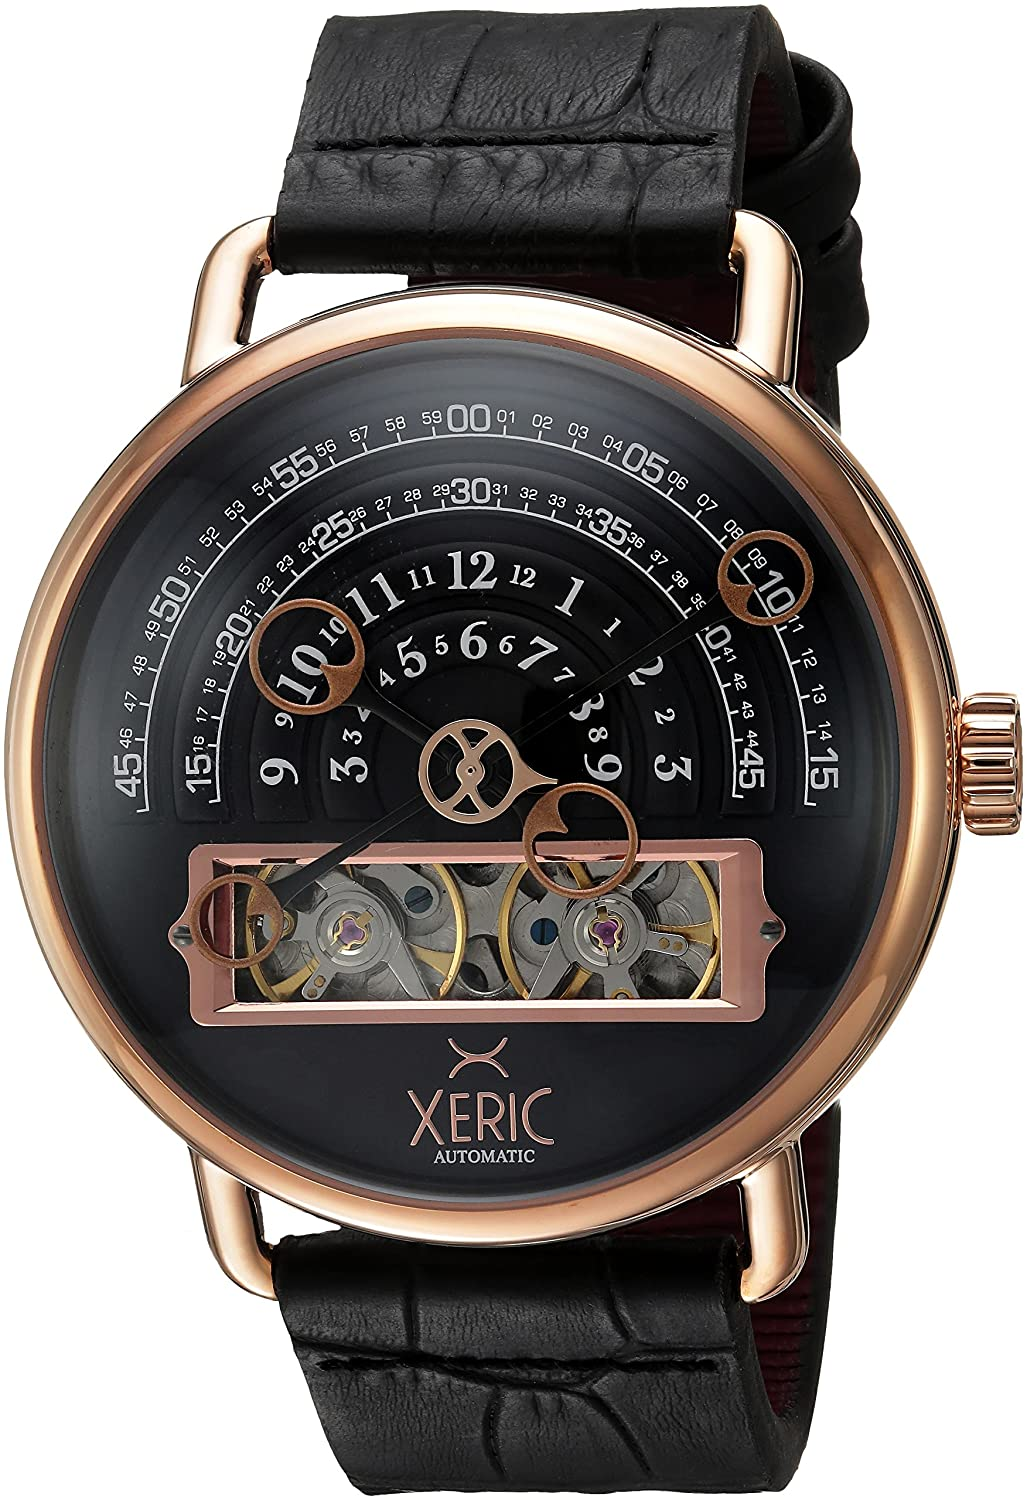 Amazon.com: Xeric Mens Automatic Stainless Steel and Leather Watch, Color Black (Model: HLG-3018): Watches